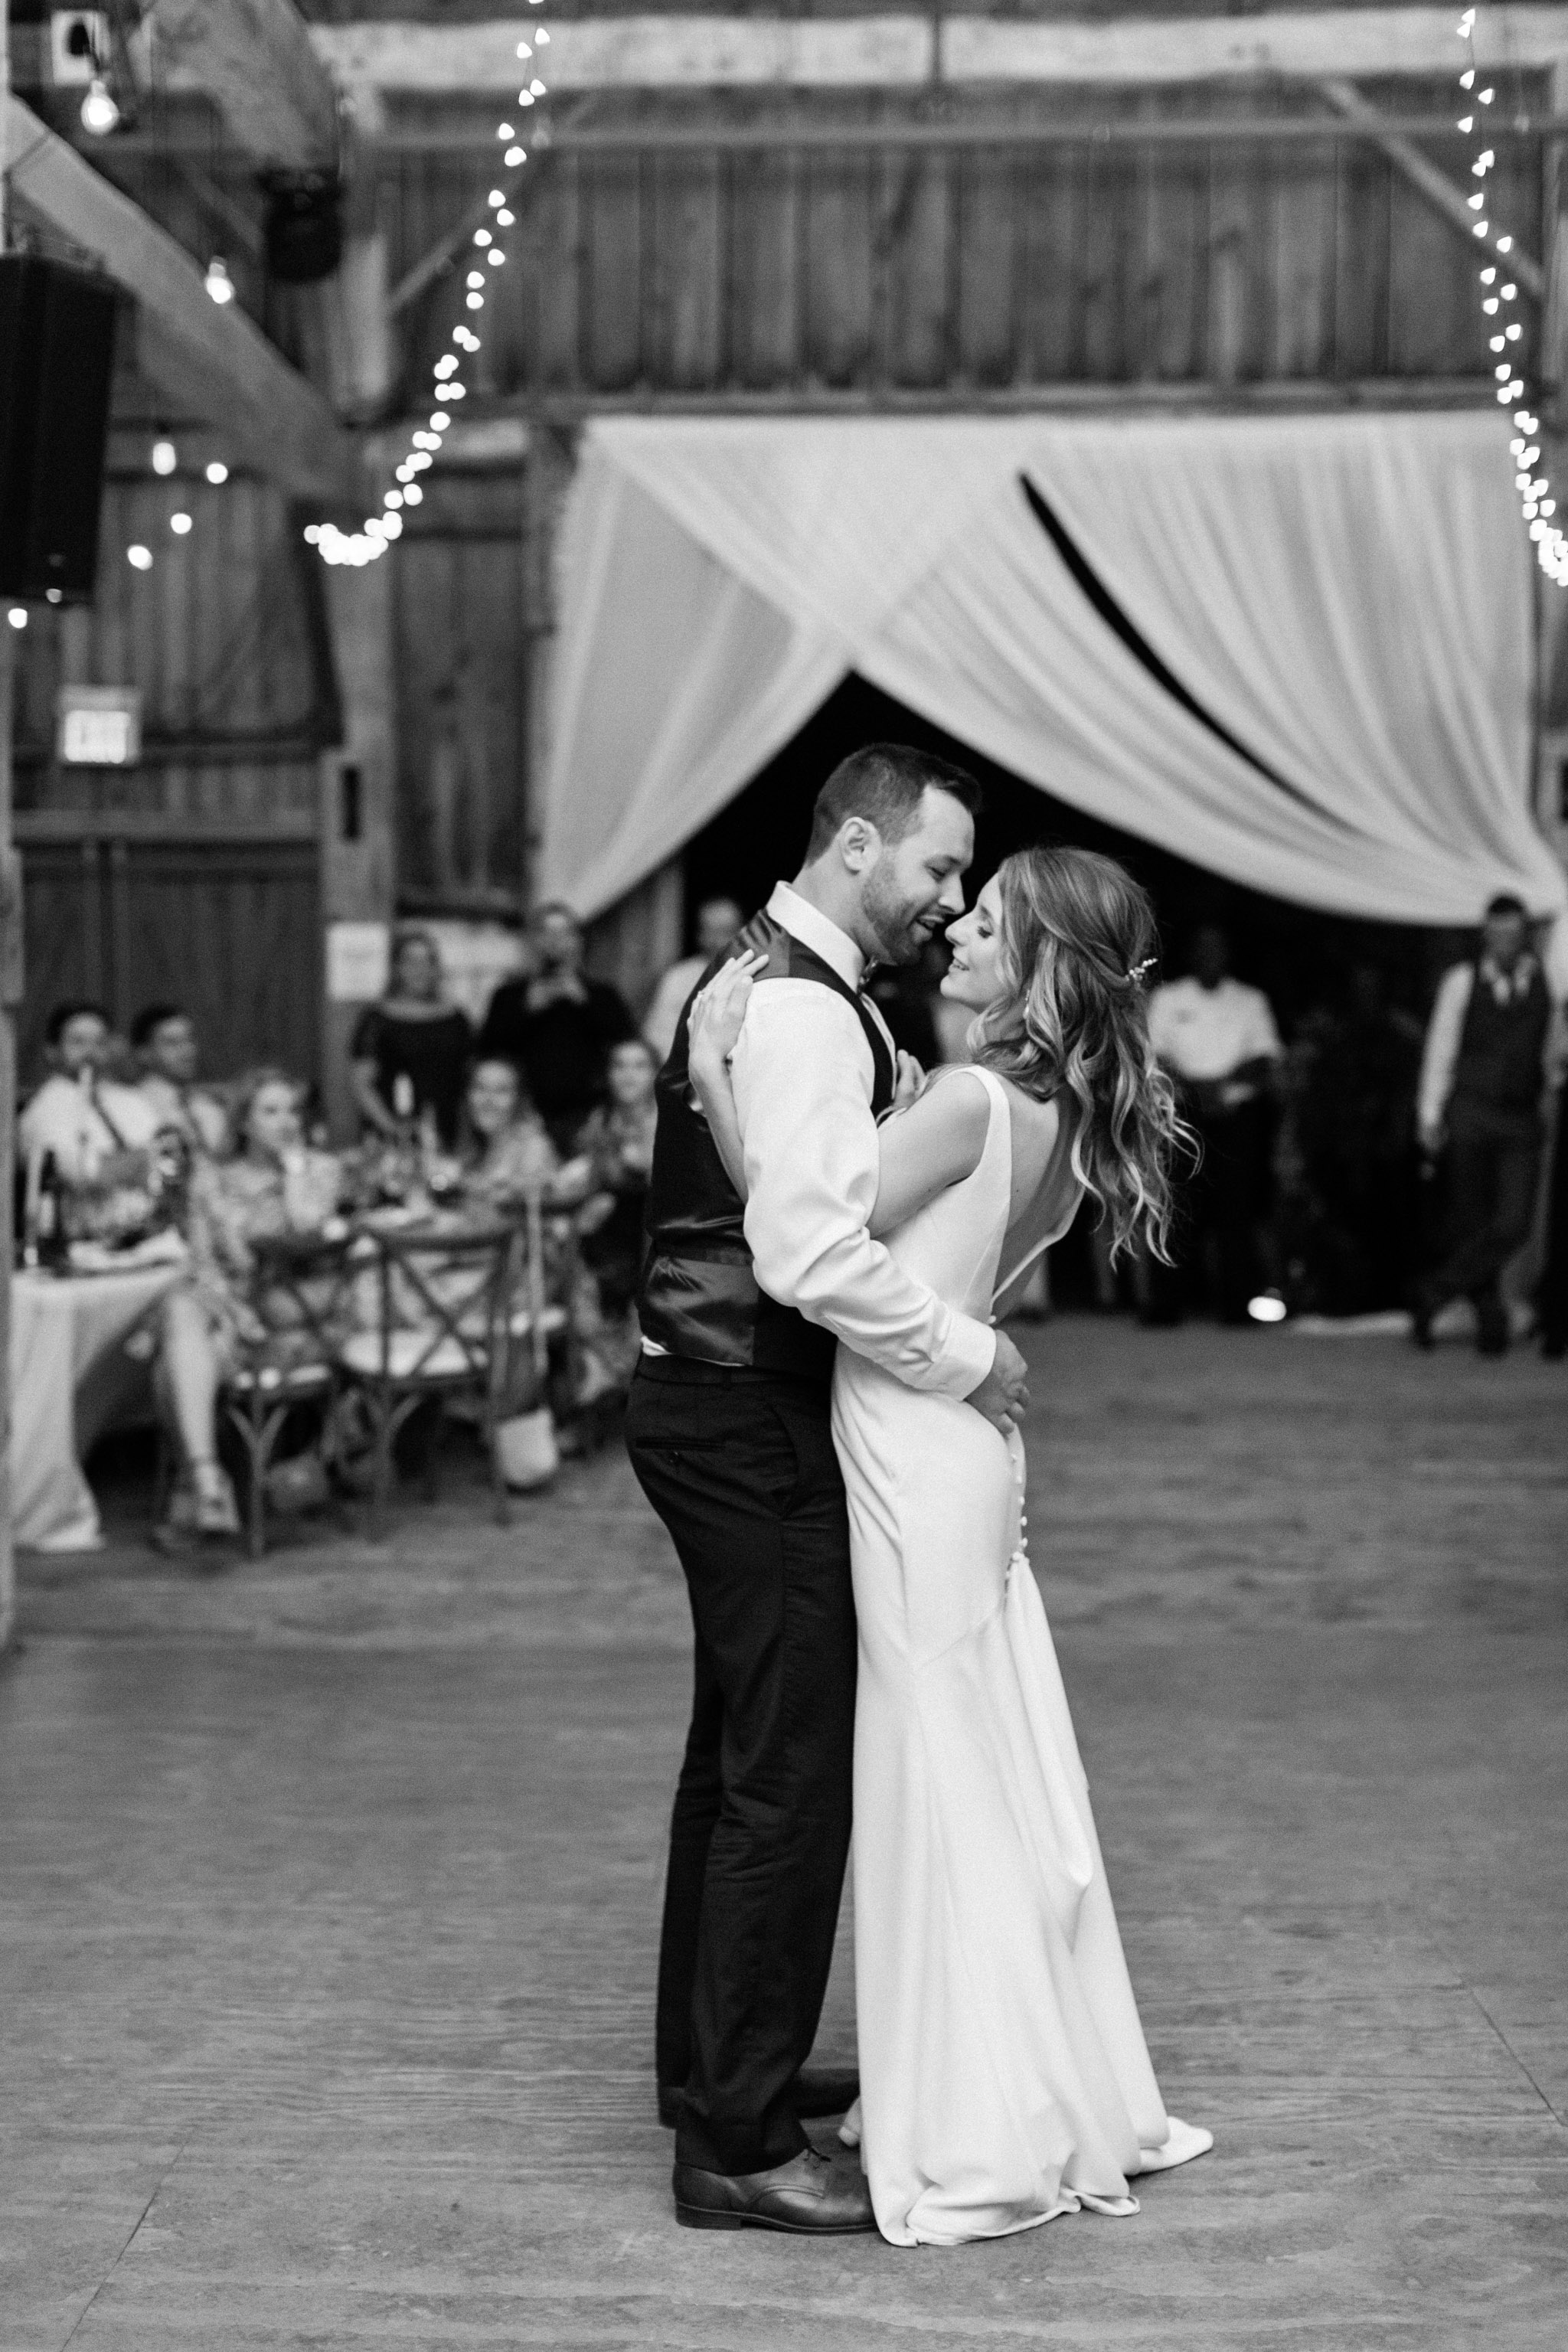 First dance photos.